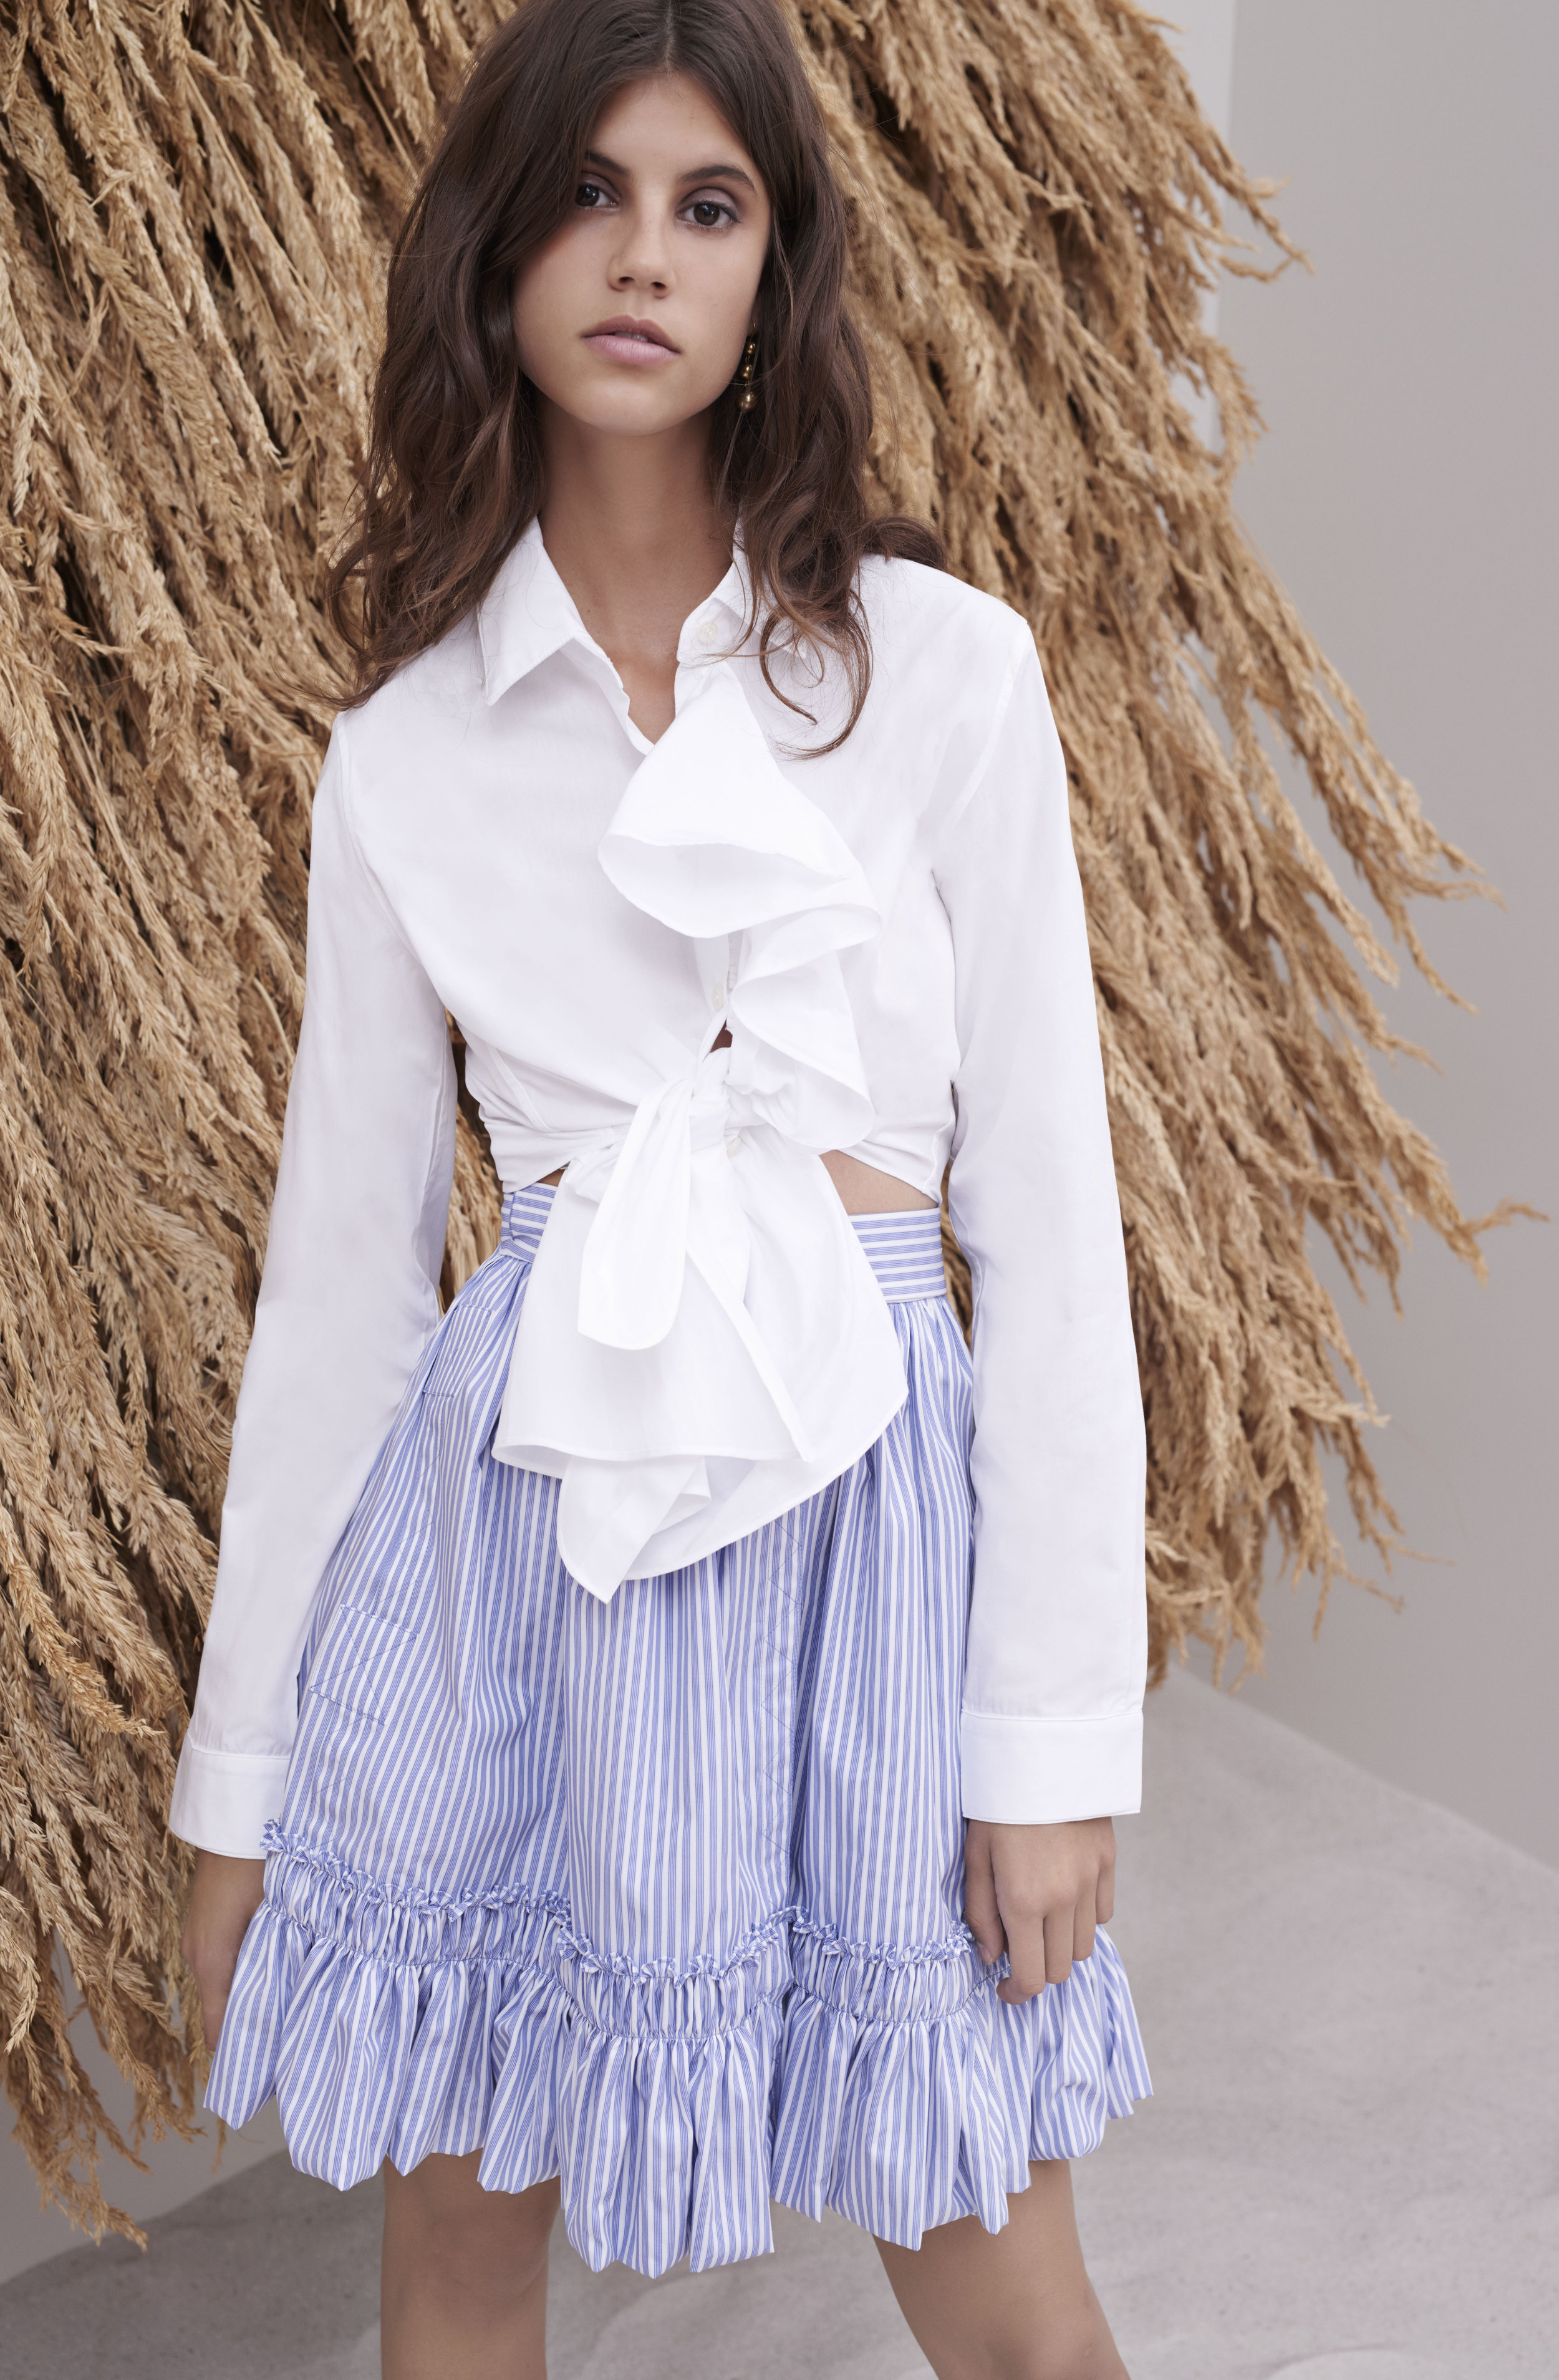 +98_BlueSkirt_WhiteRuffle_Blouse_2061.jpg